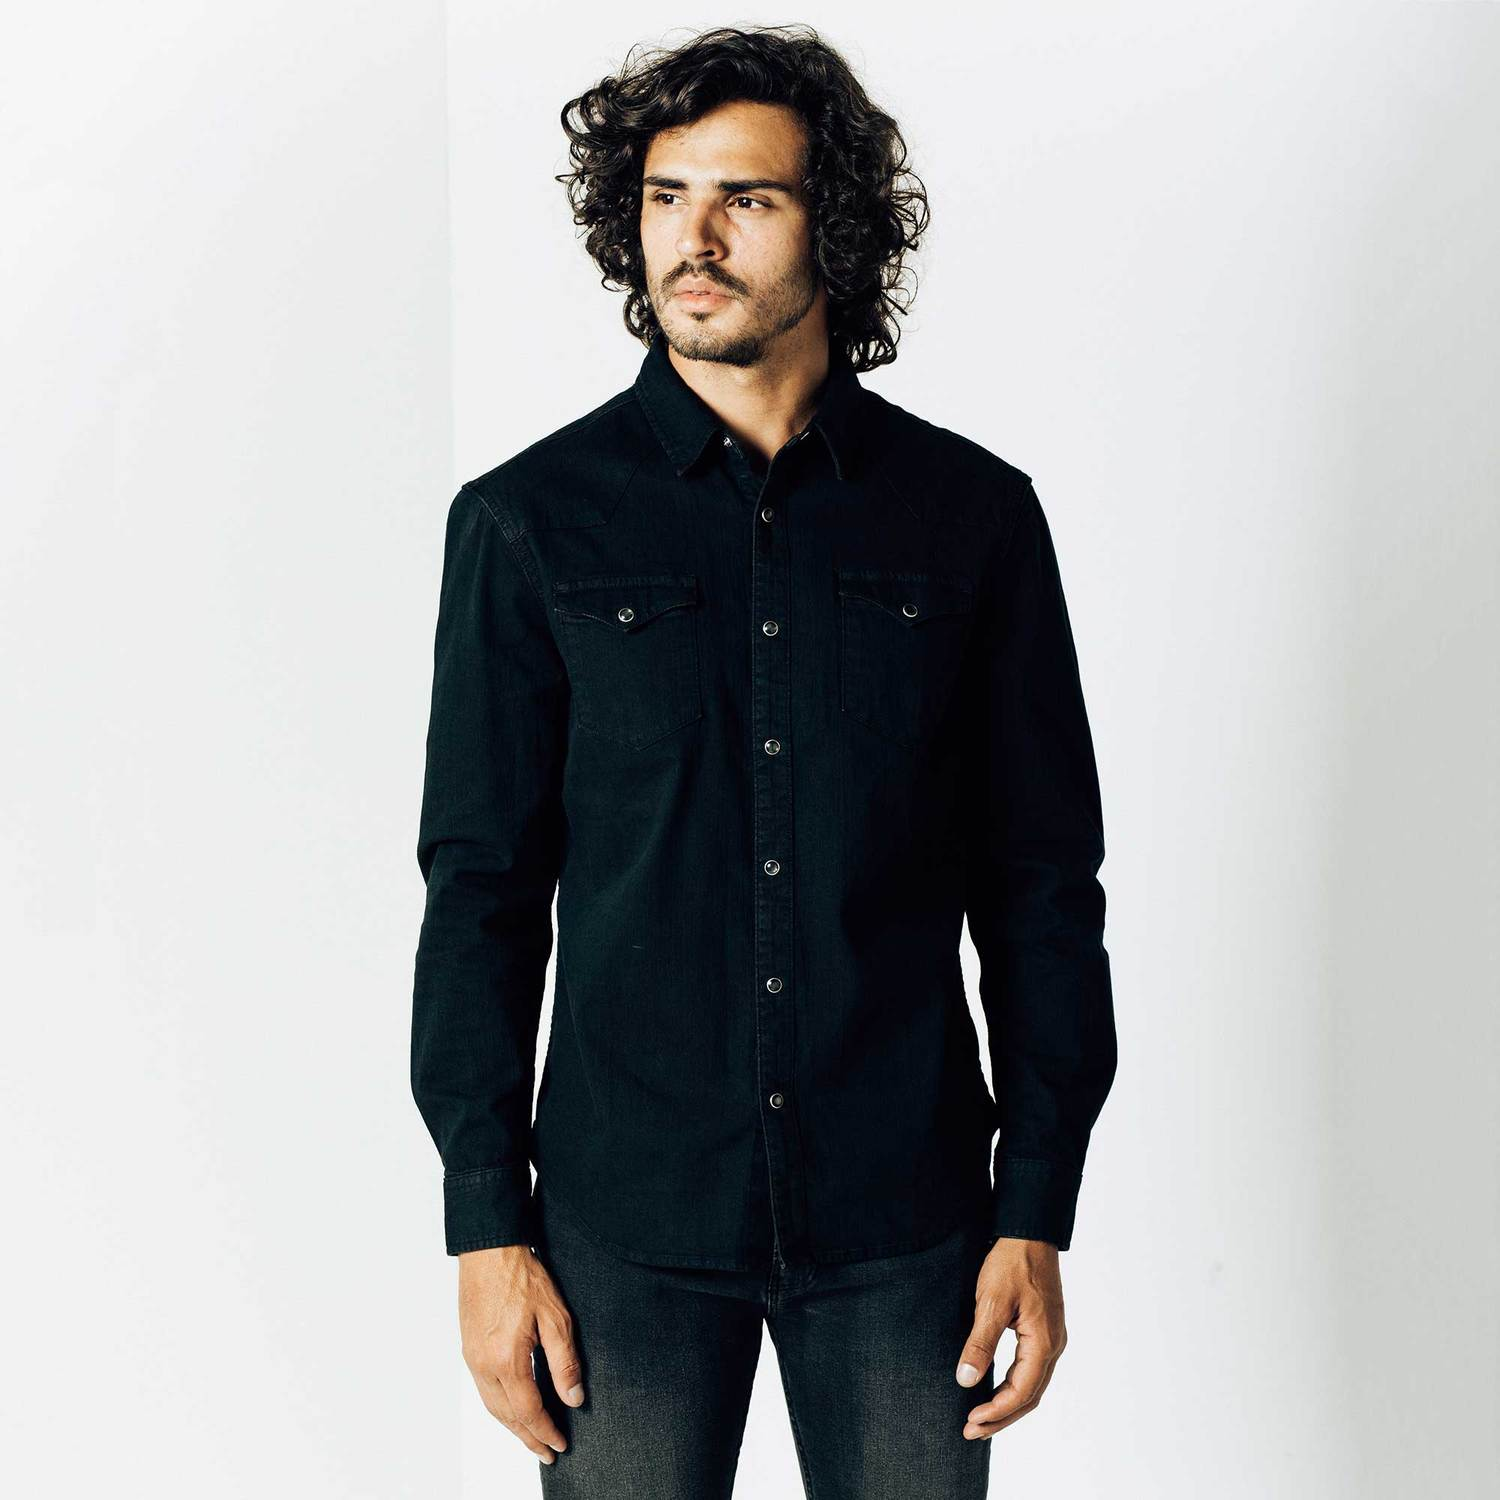 Mens Snap Button Down Denim Shirt In Black Overdye $75 | DSTLD